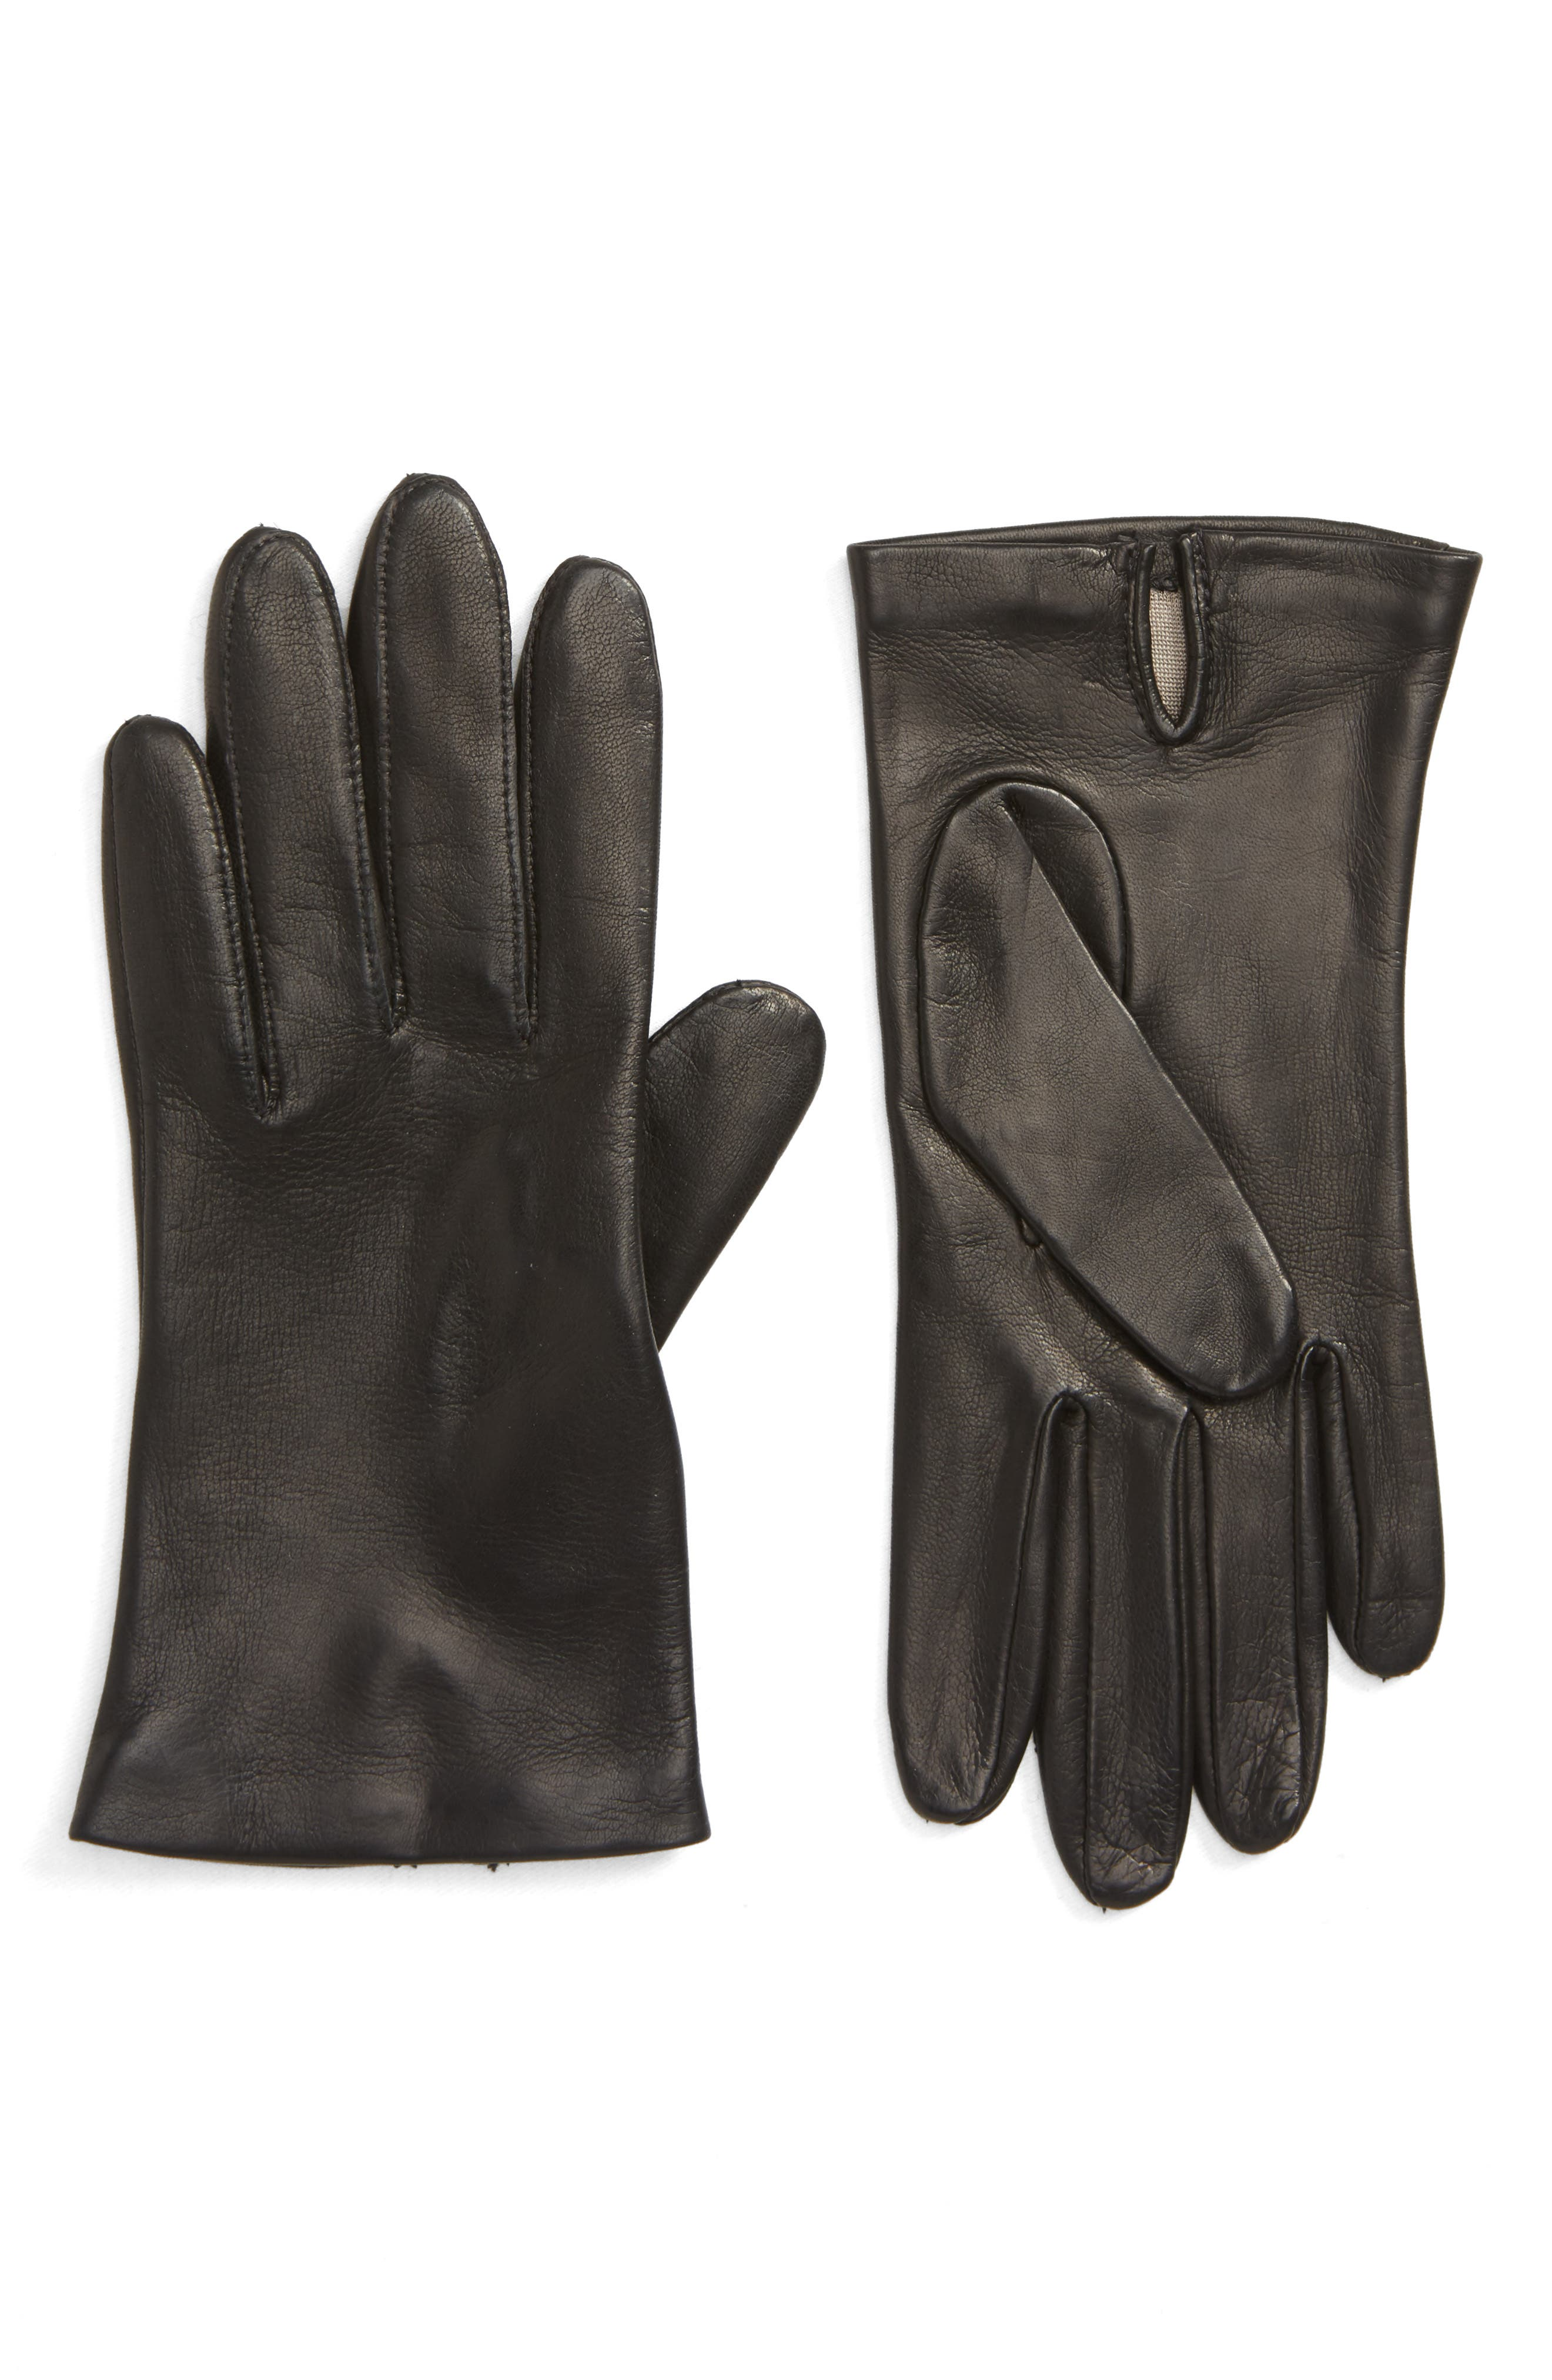 NORDSTROM,                             Lambskin Leather Gloves,                             Main thumbnail 1, color,                             001